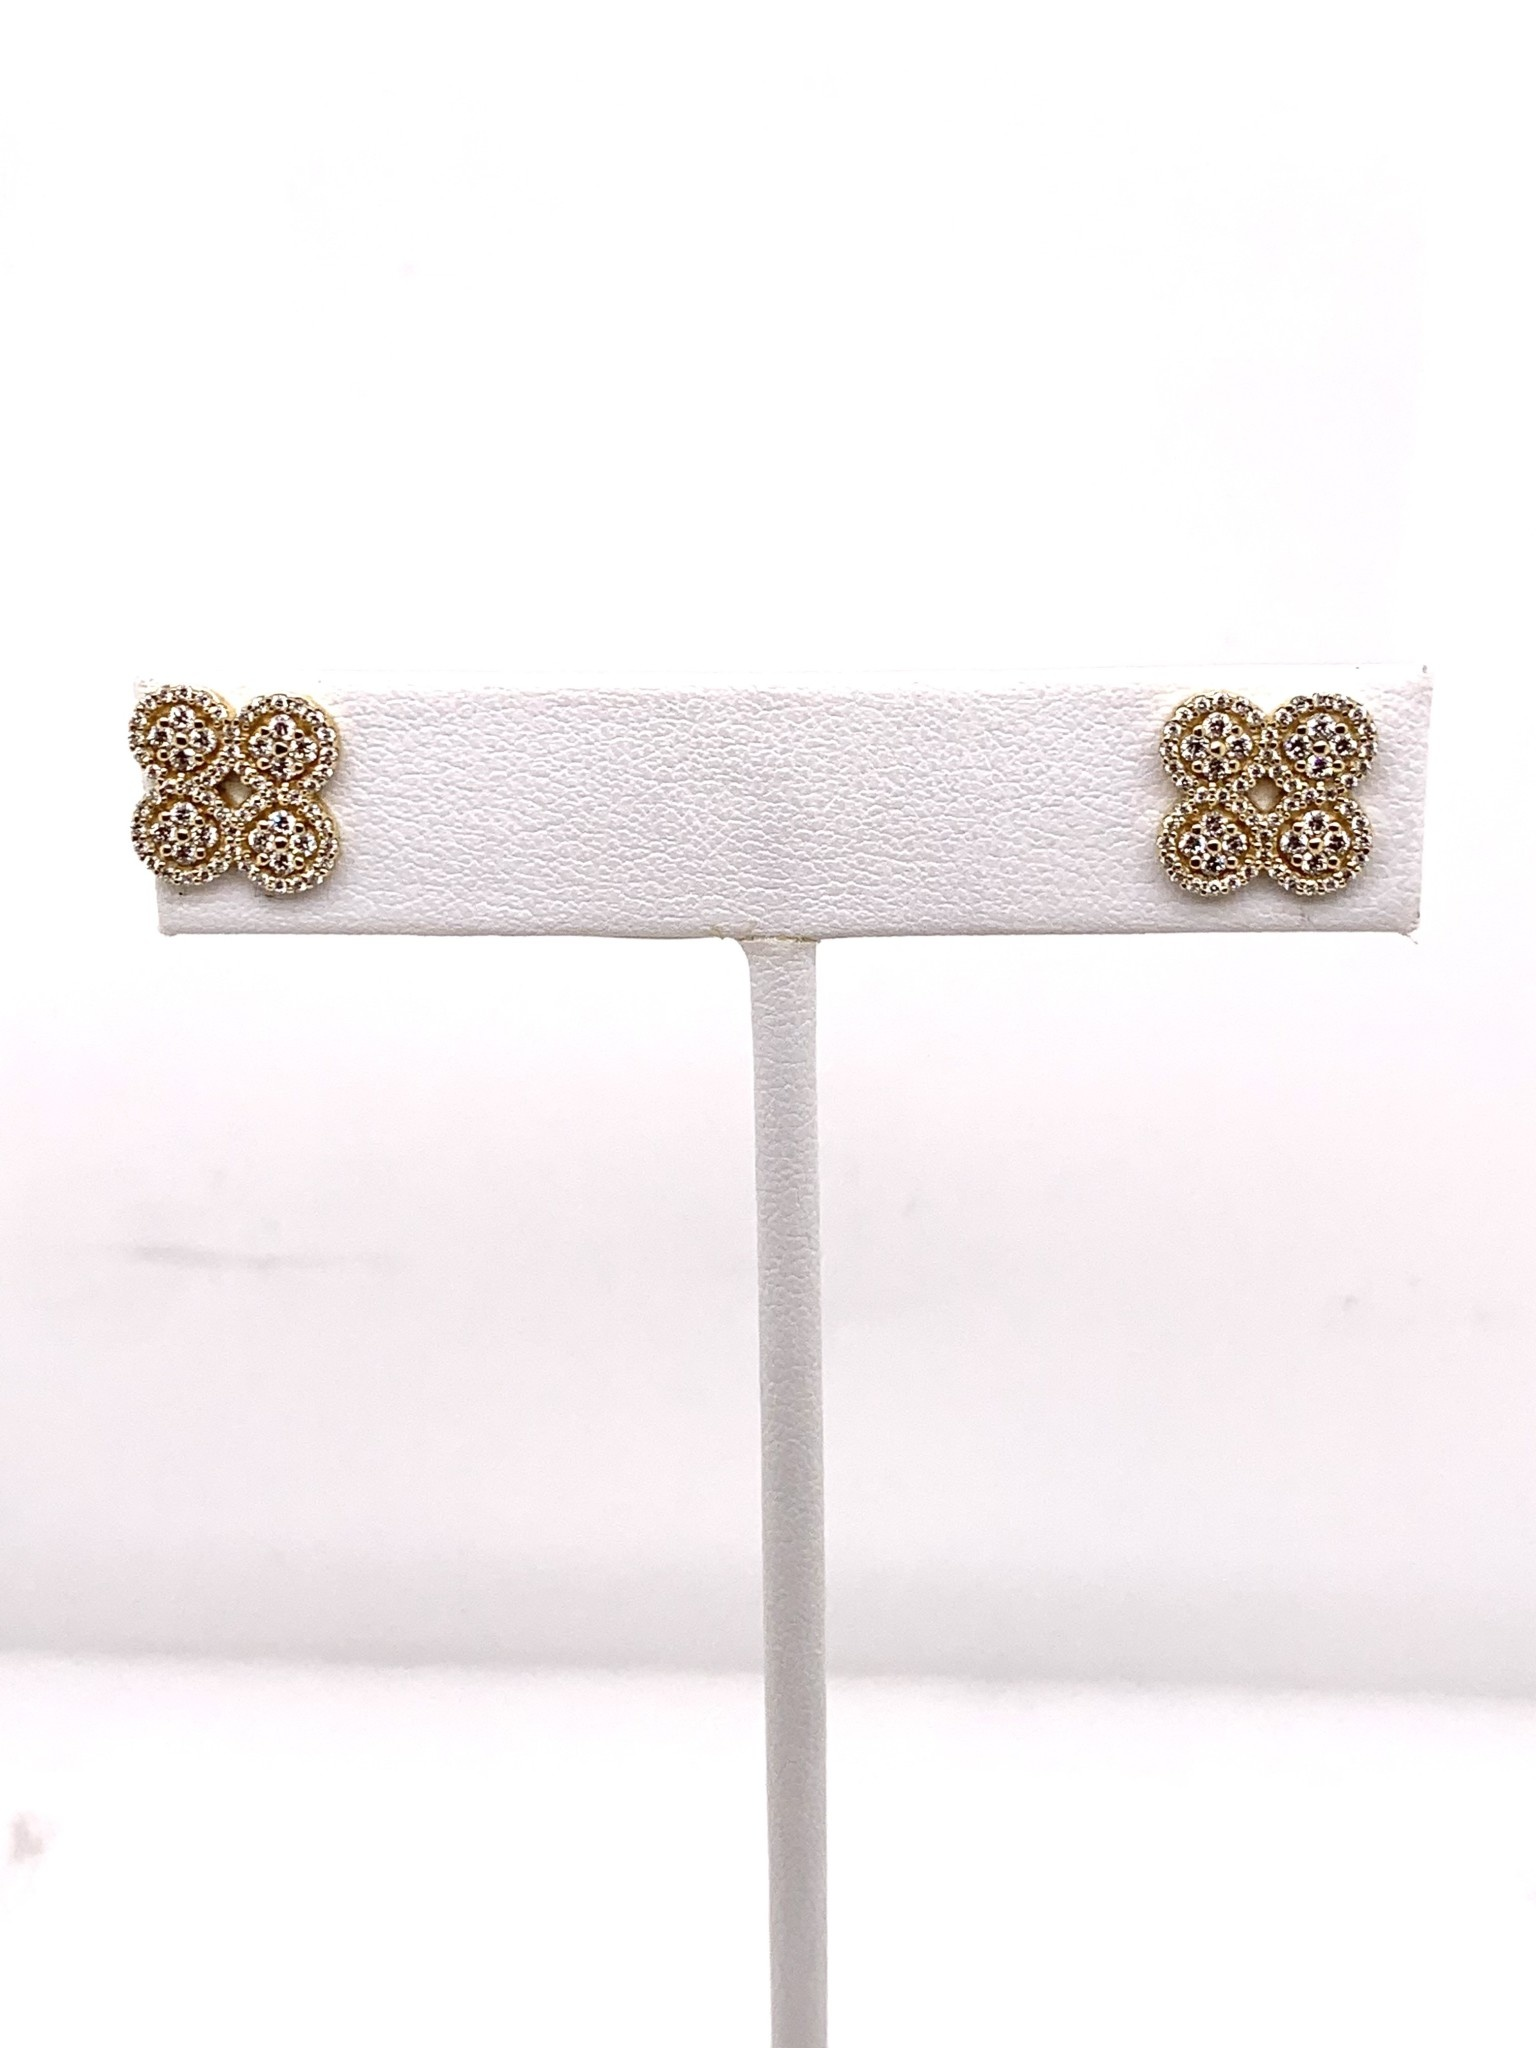 14K yellow 1/2 carat diamond clover earrings